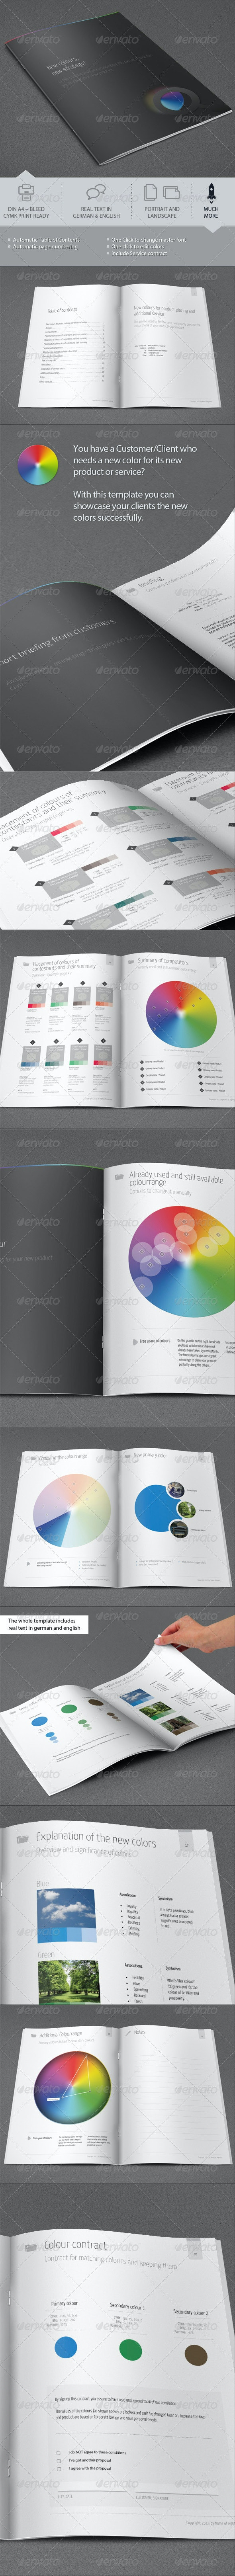 Color Finder Proposal for new Product and Service - Proposals & Invoices Stationery